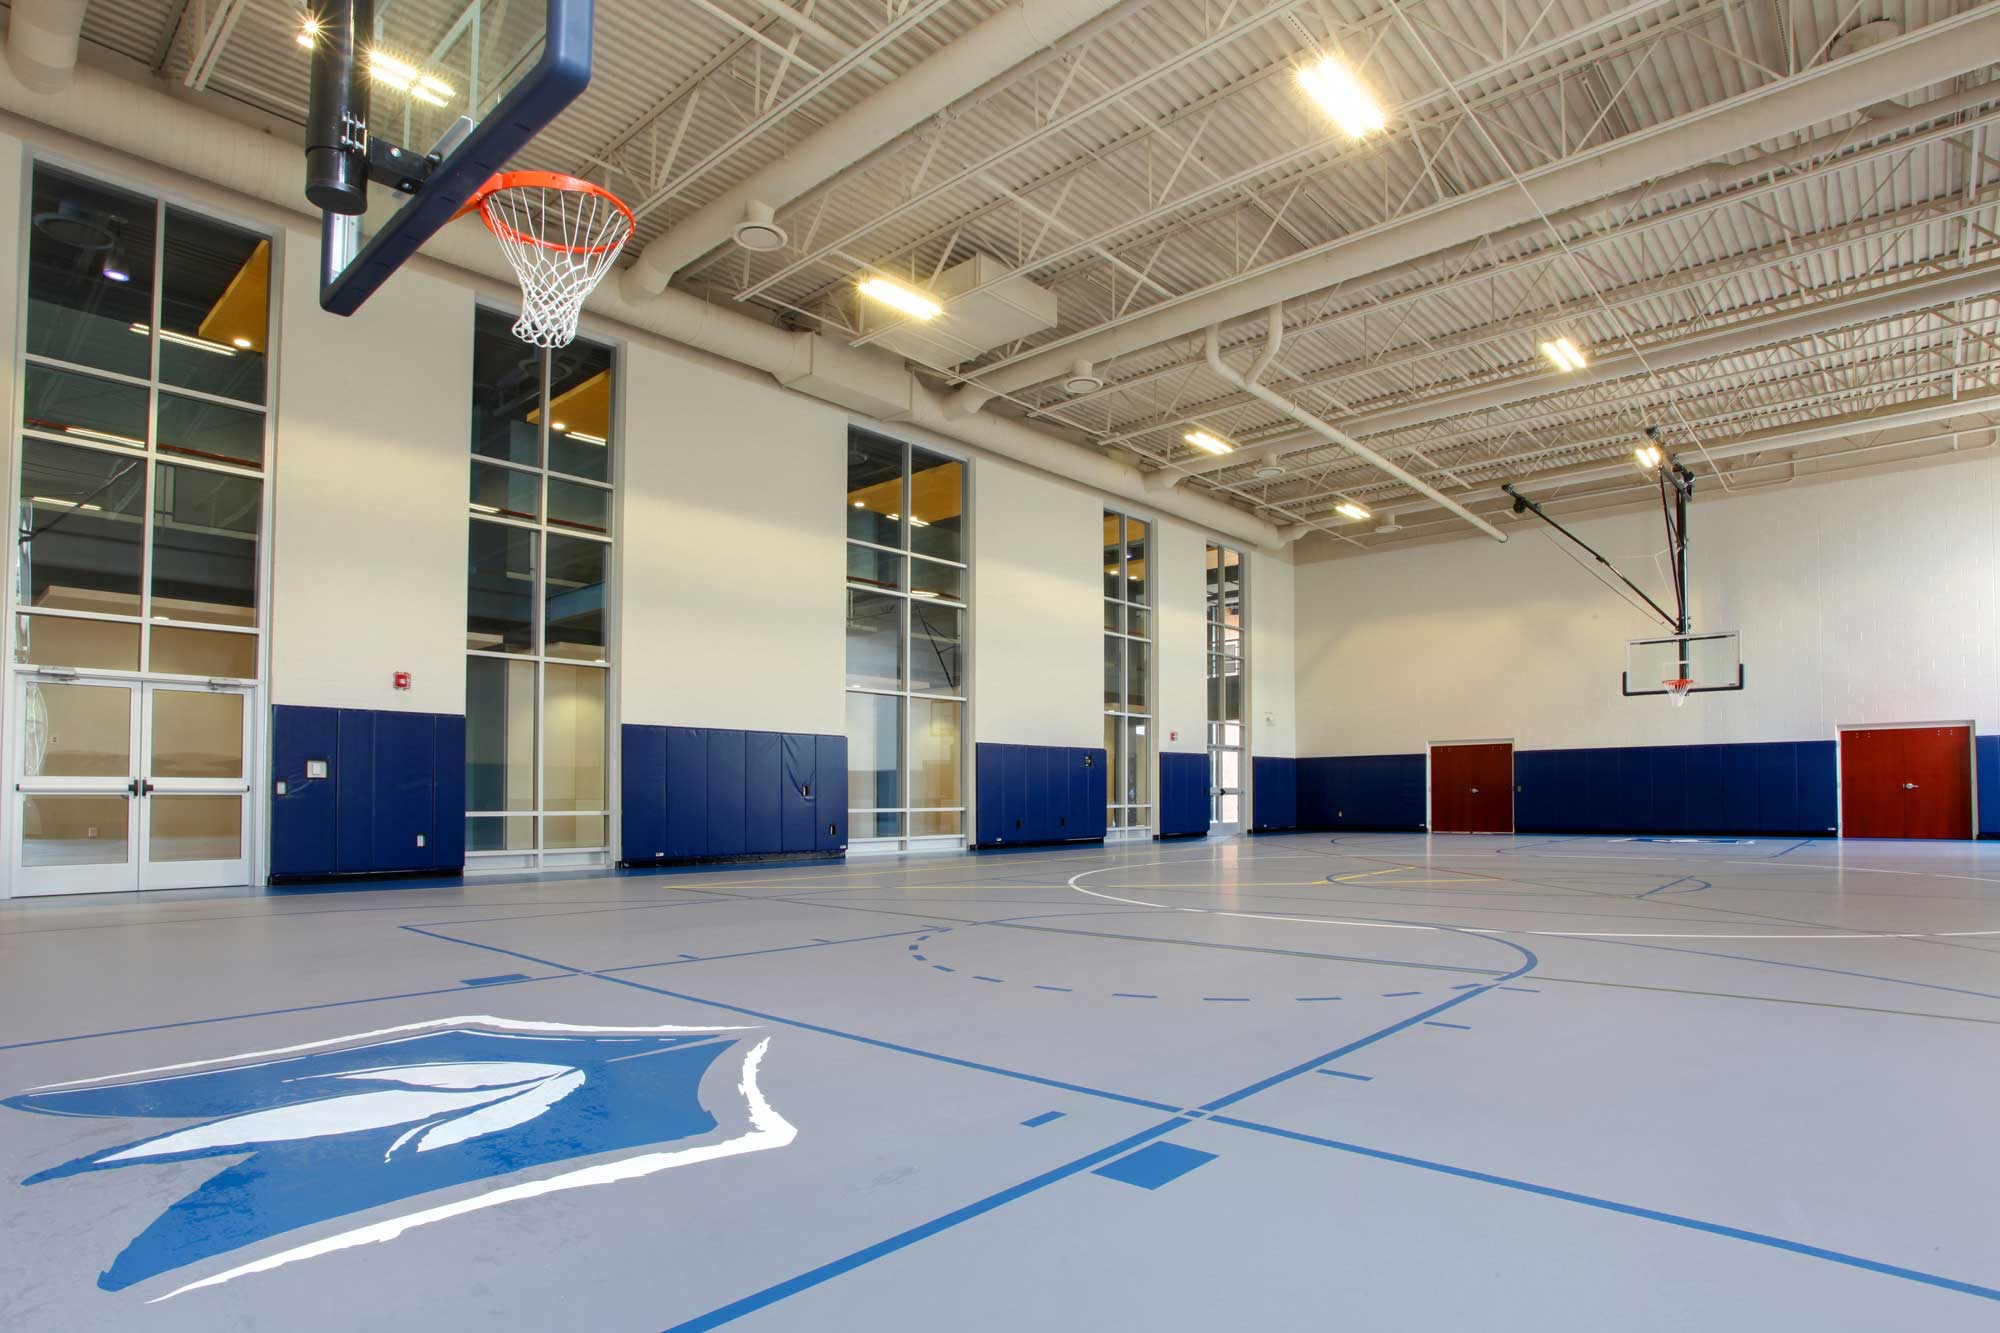 Feature of Harvest Bible Chapel's basketball court